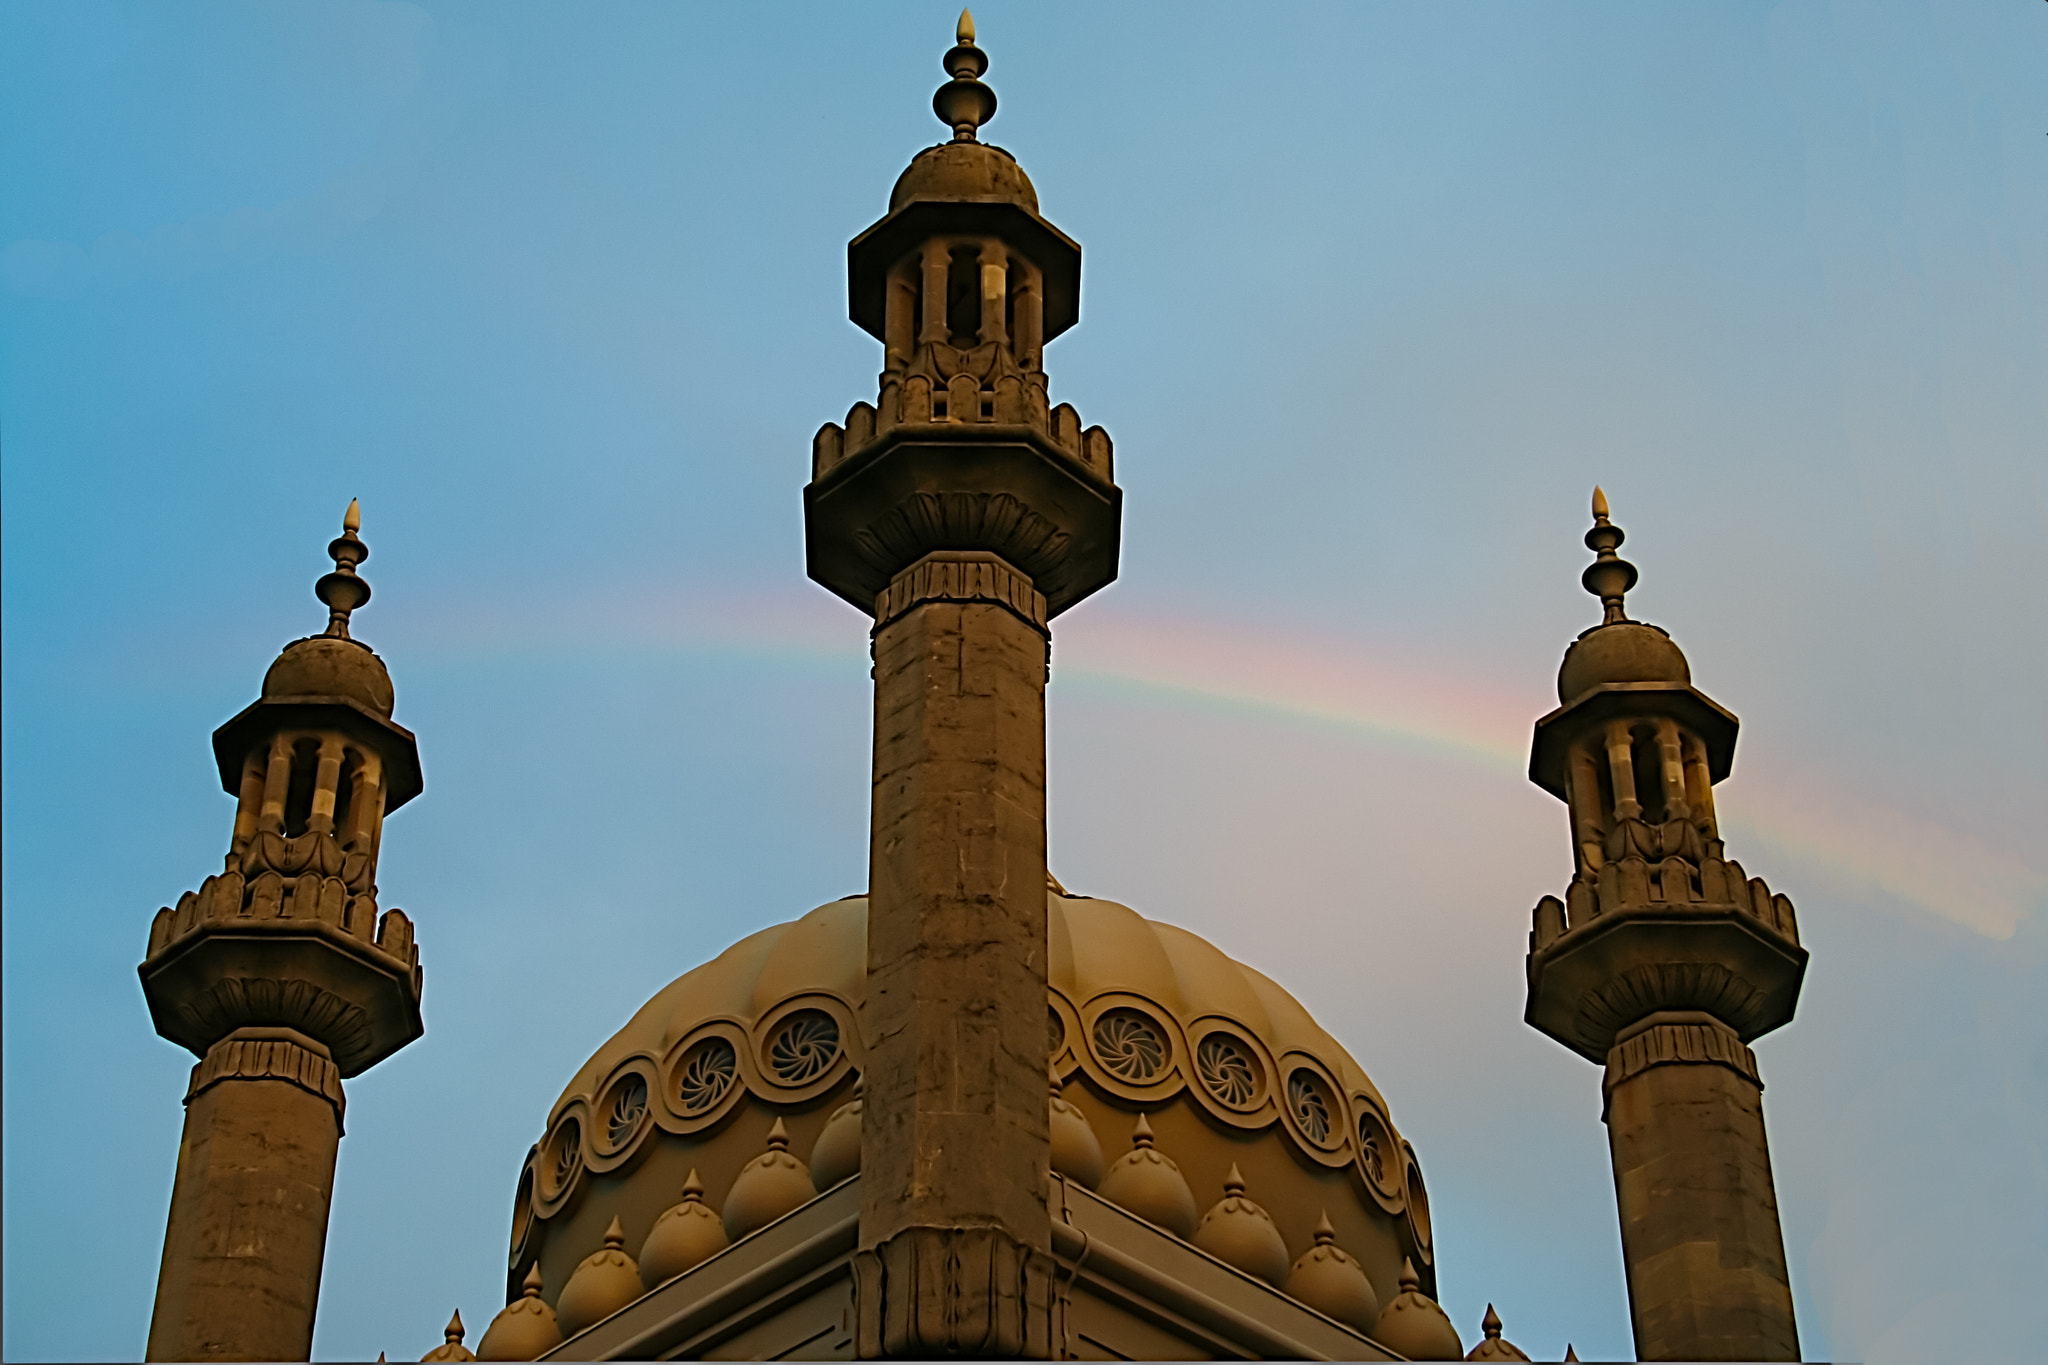 Photograph Brighton Pavilion by Francois Steque on 500px